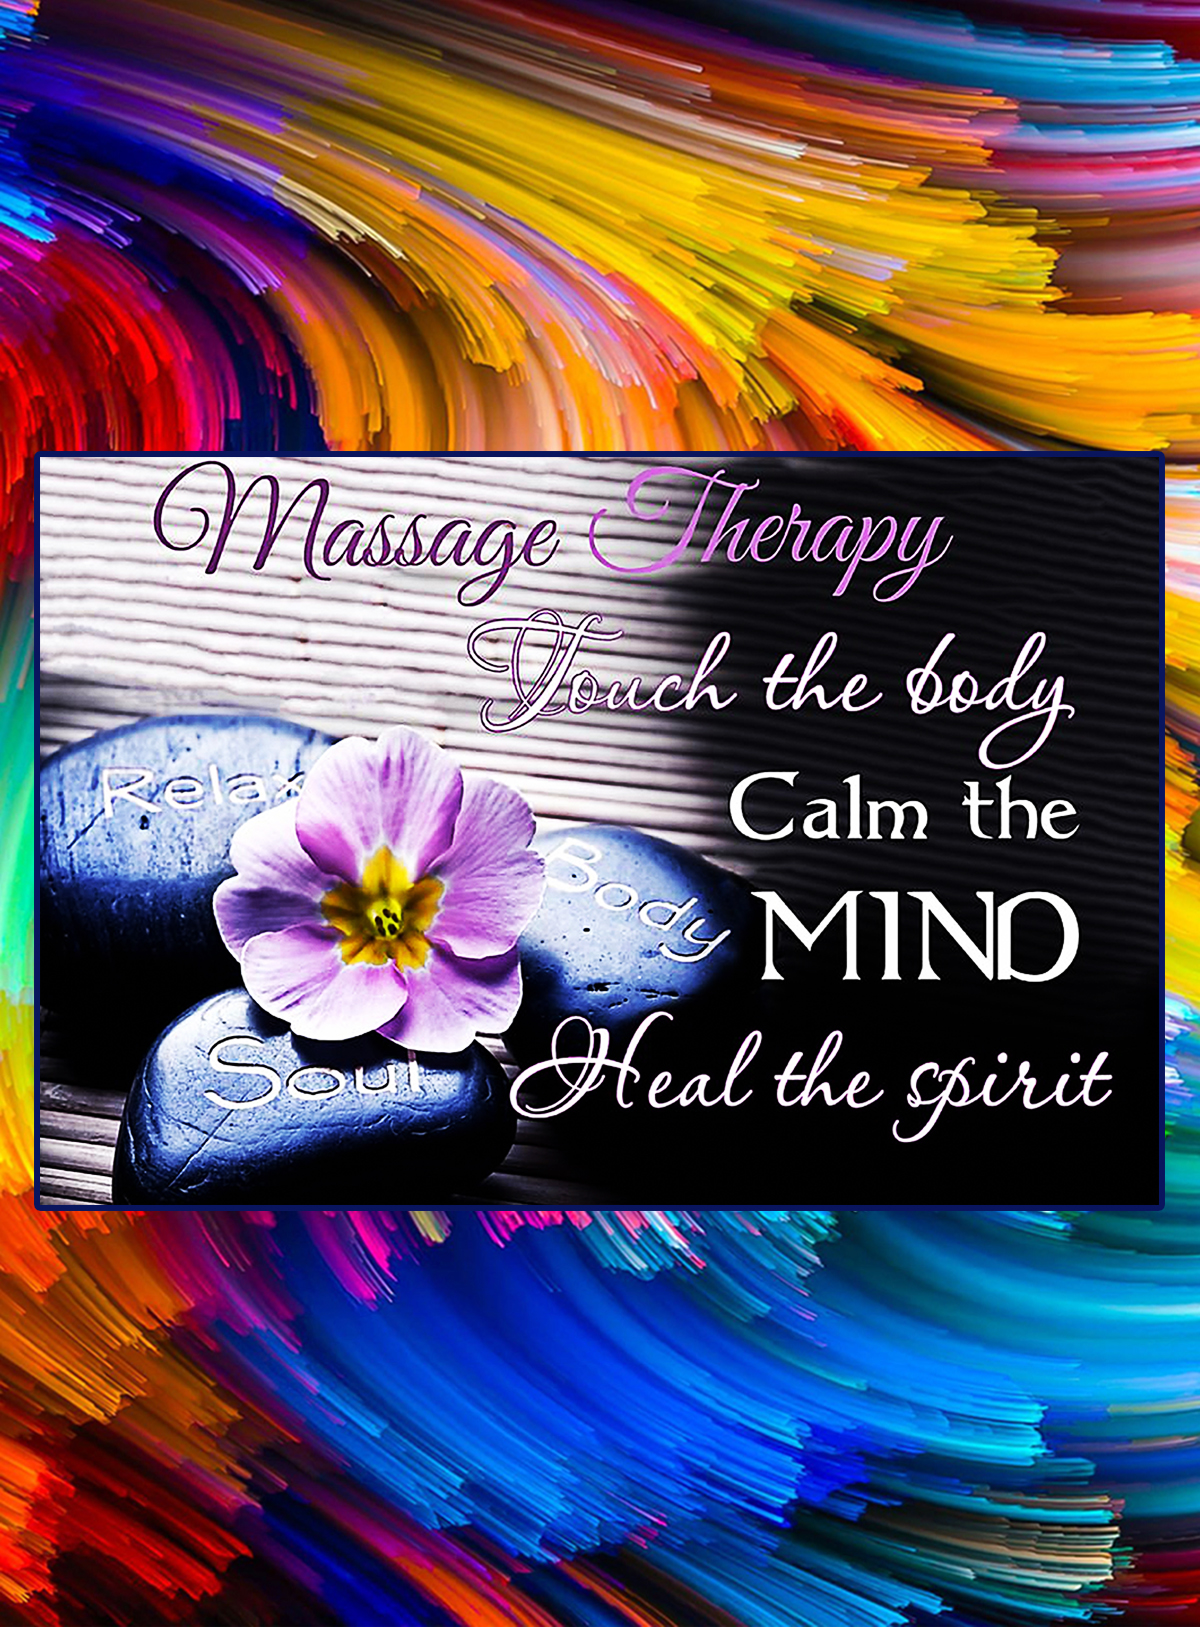 Massage therapy touch the body calm the mind heal the spirit poster - A4